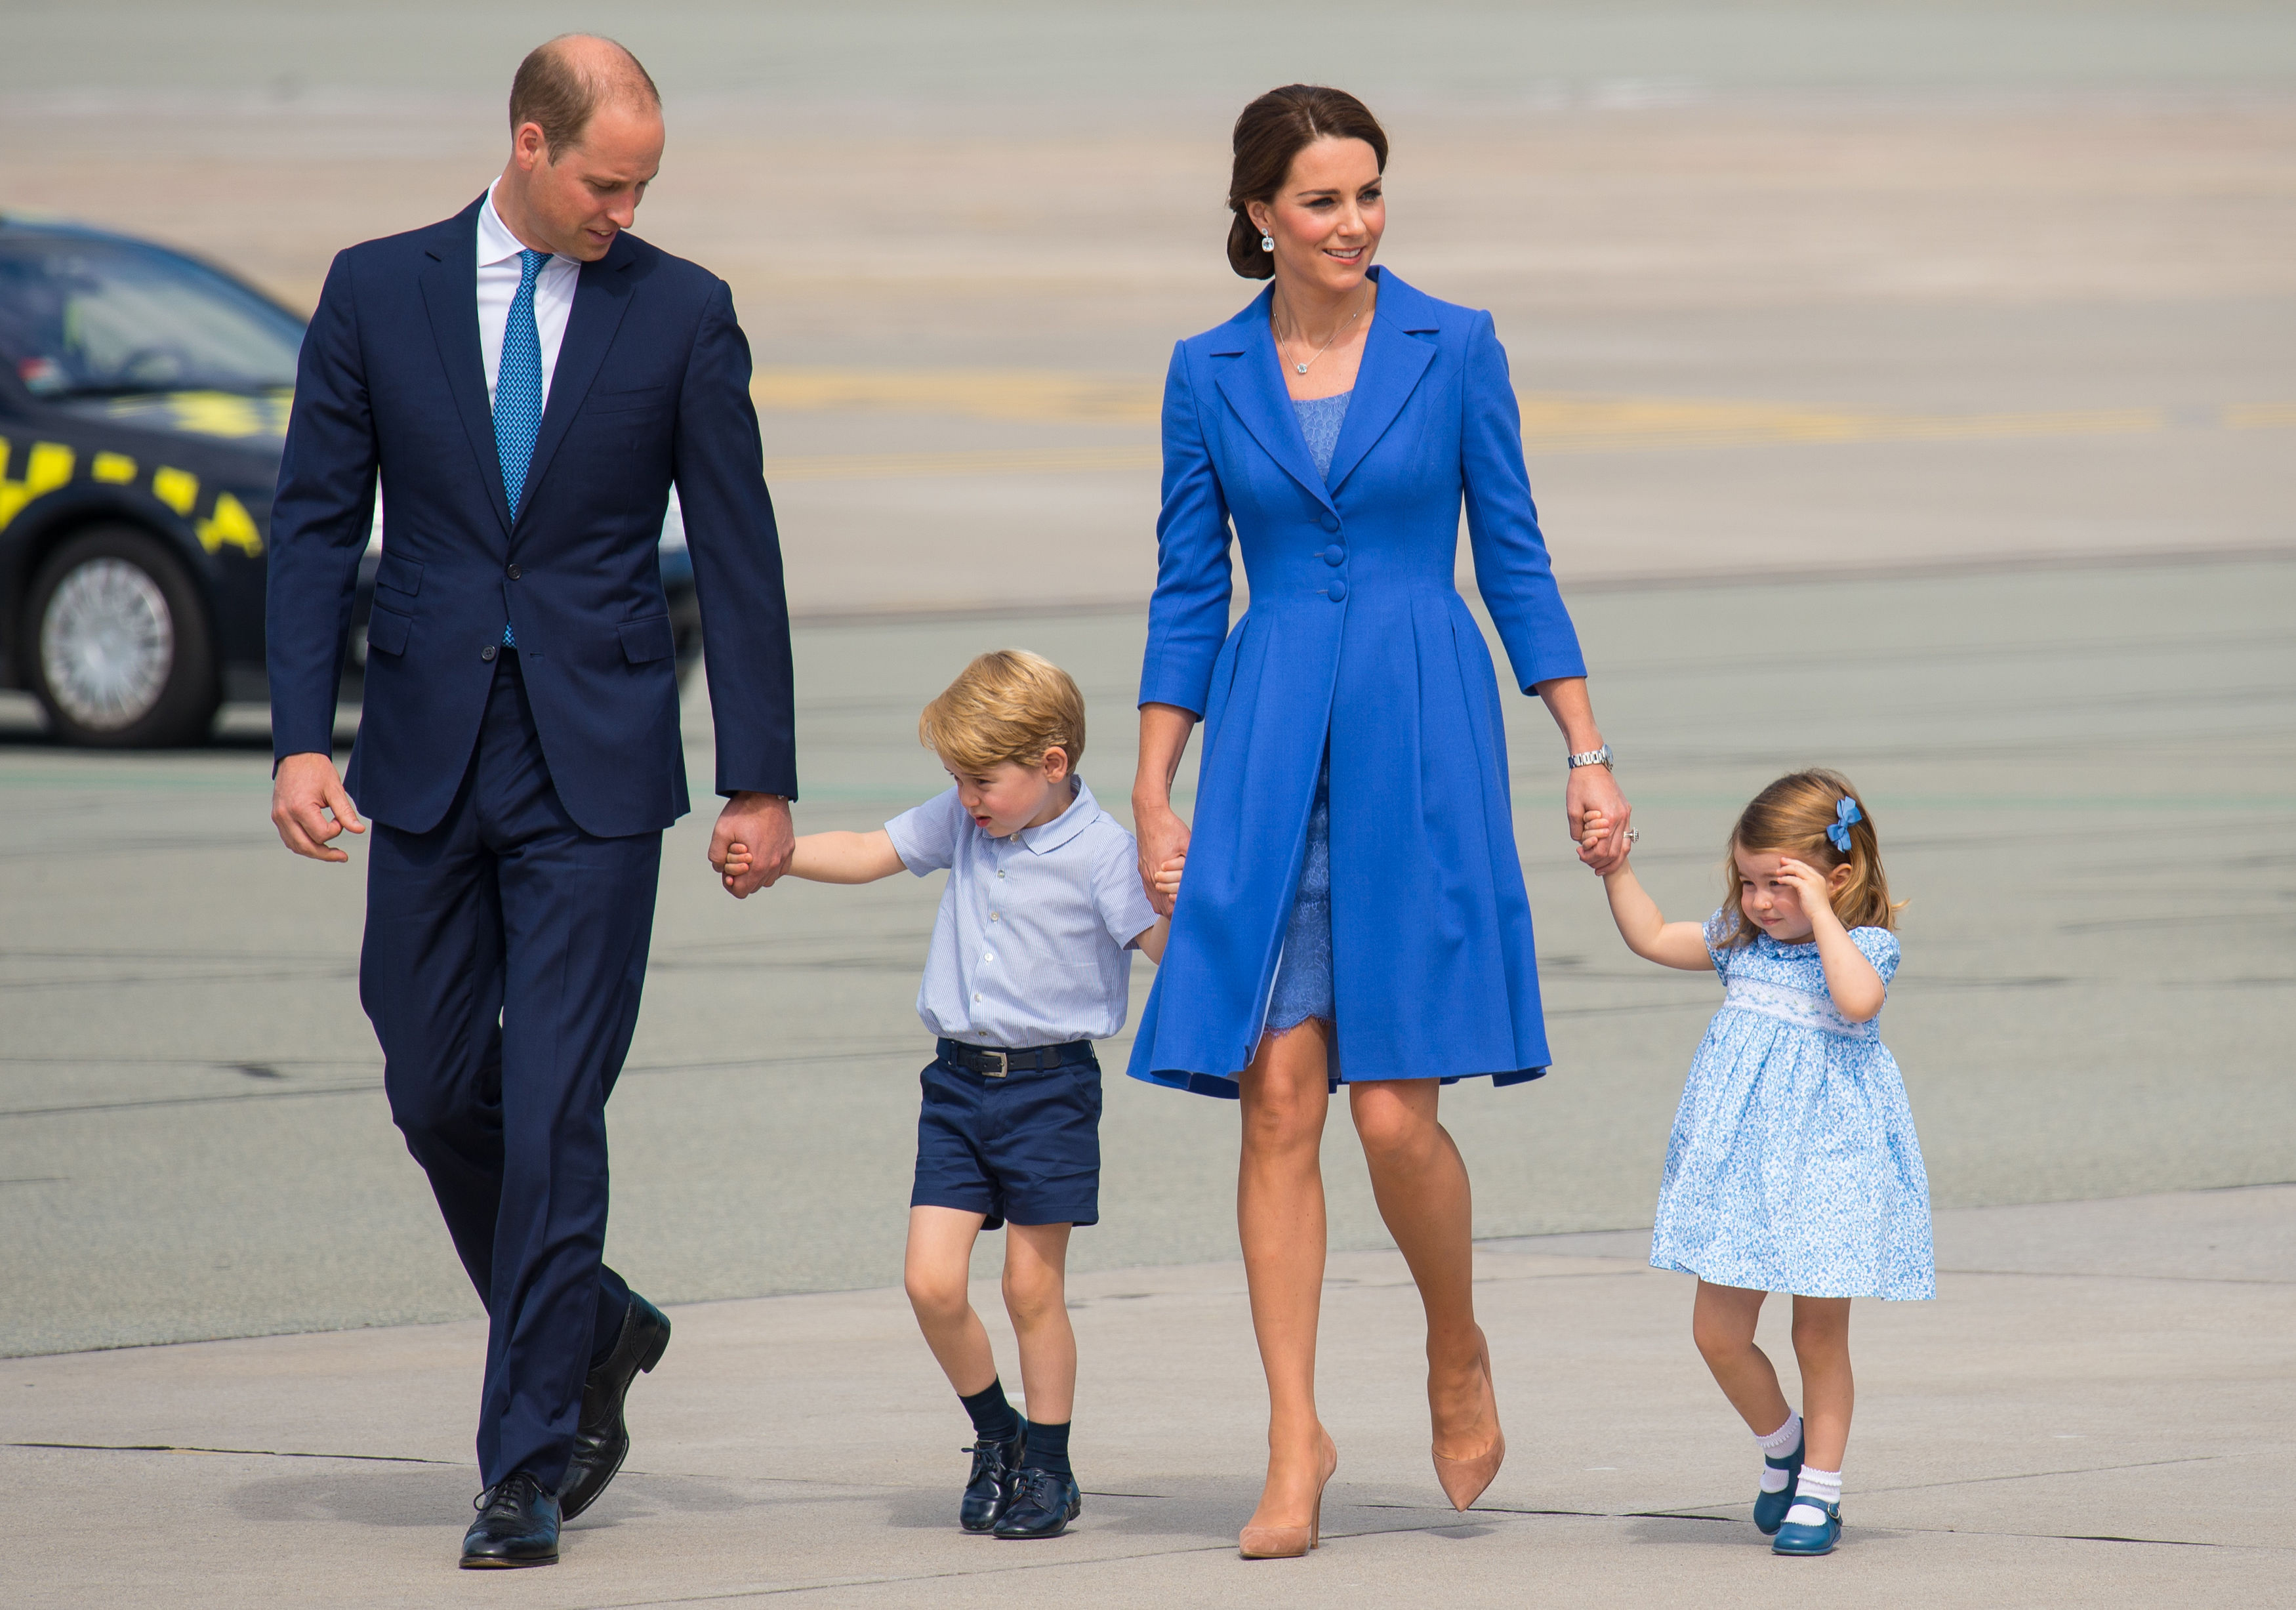 Duke and Duchess of Cambridge Prince George and Princess Charlotte departing from Chopin airport